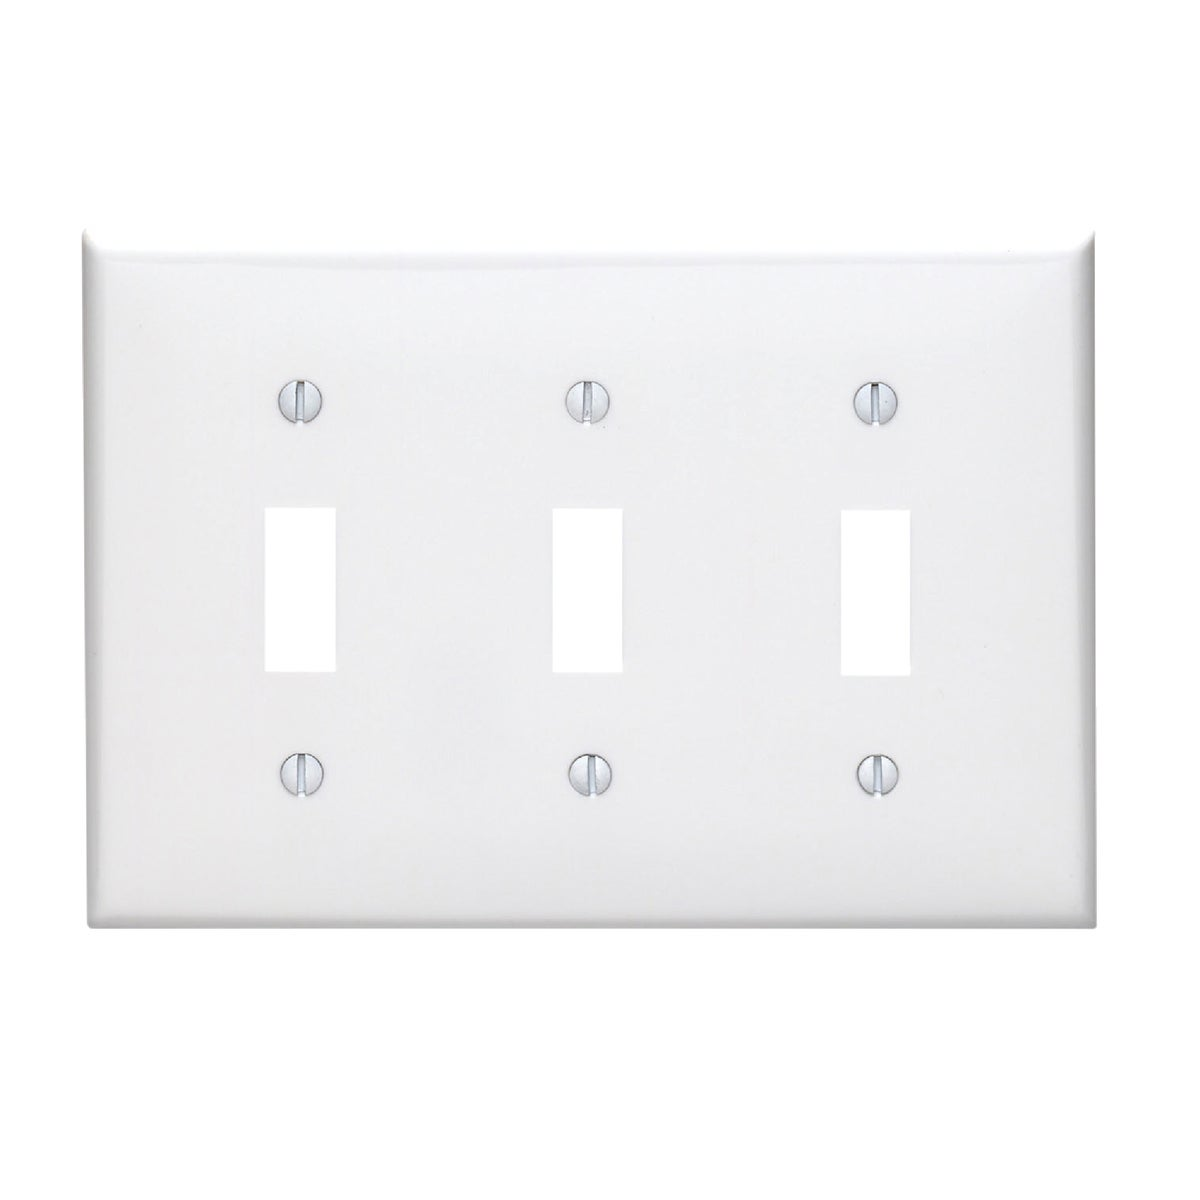 WHT 3-TOGGLE WALL PLATE - 80711W by Leviton Mfg Co